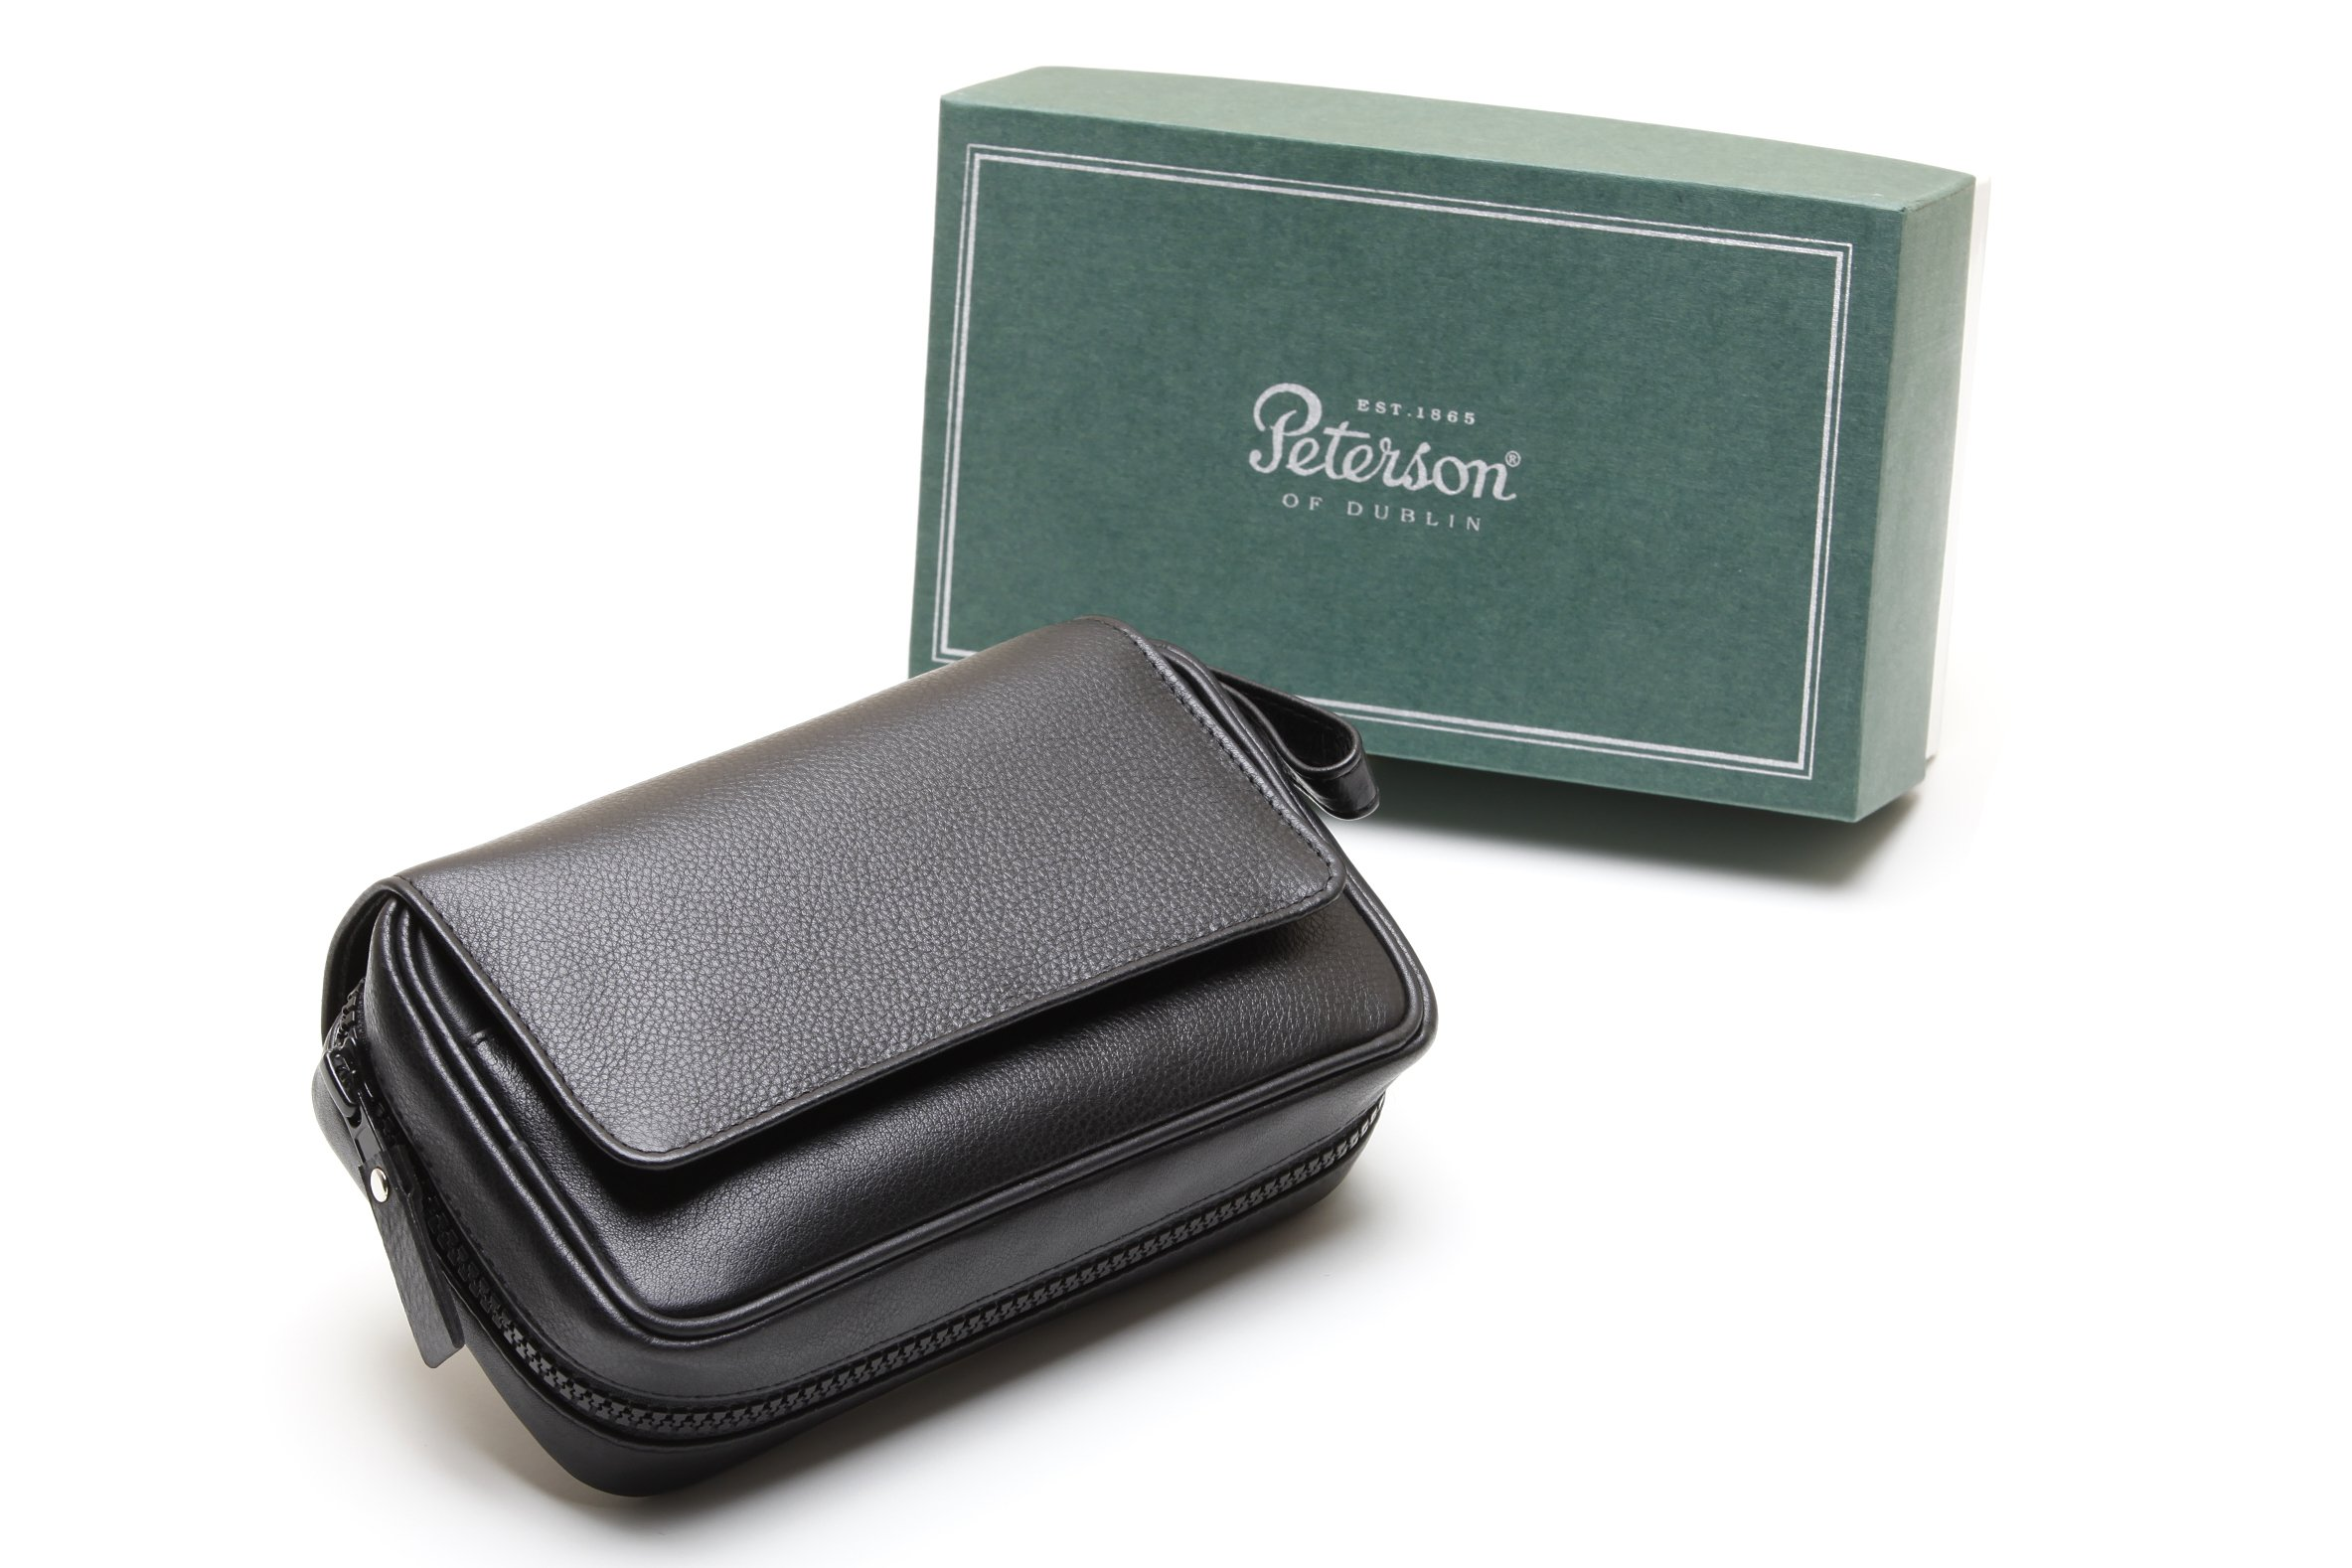 Peterson 2 Pipe Large Bag Pipe Pouch